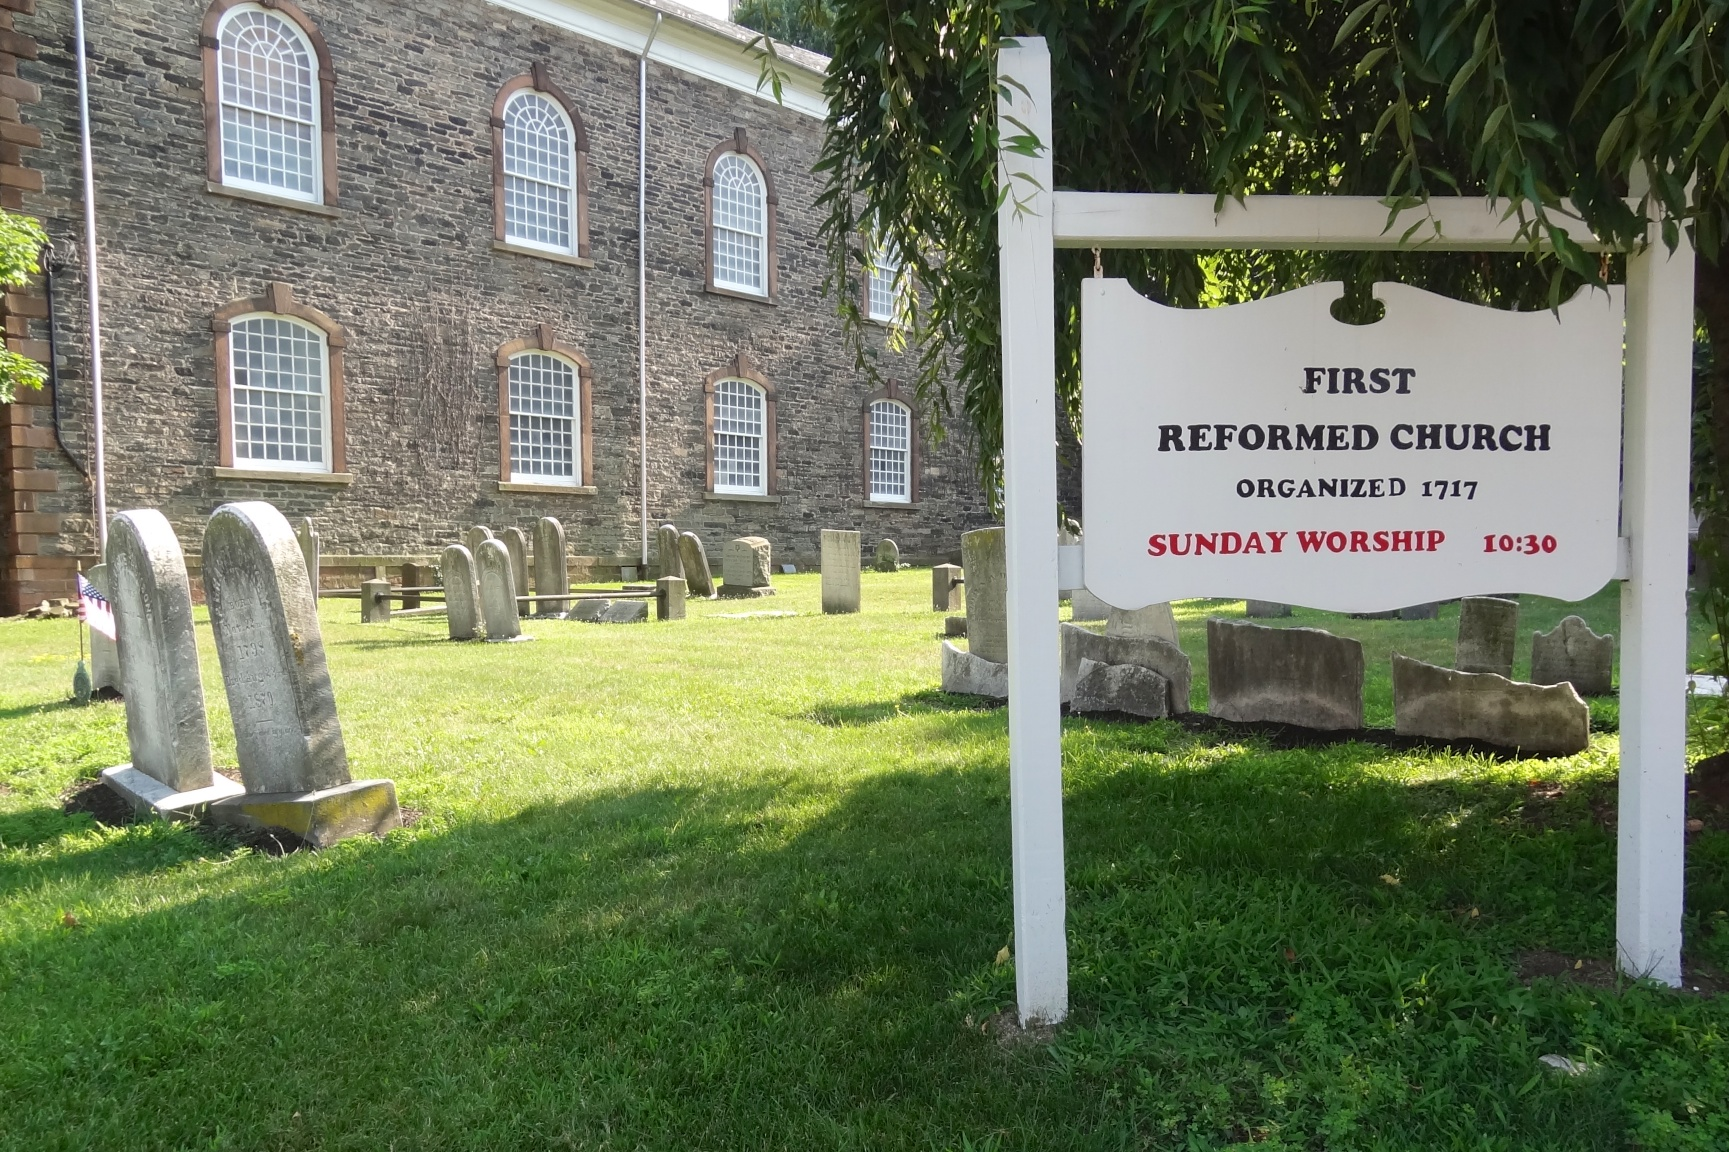 First Reformed Church and its adjacent graveyard